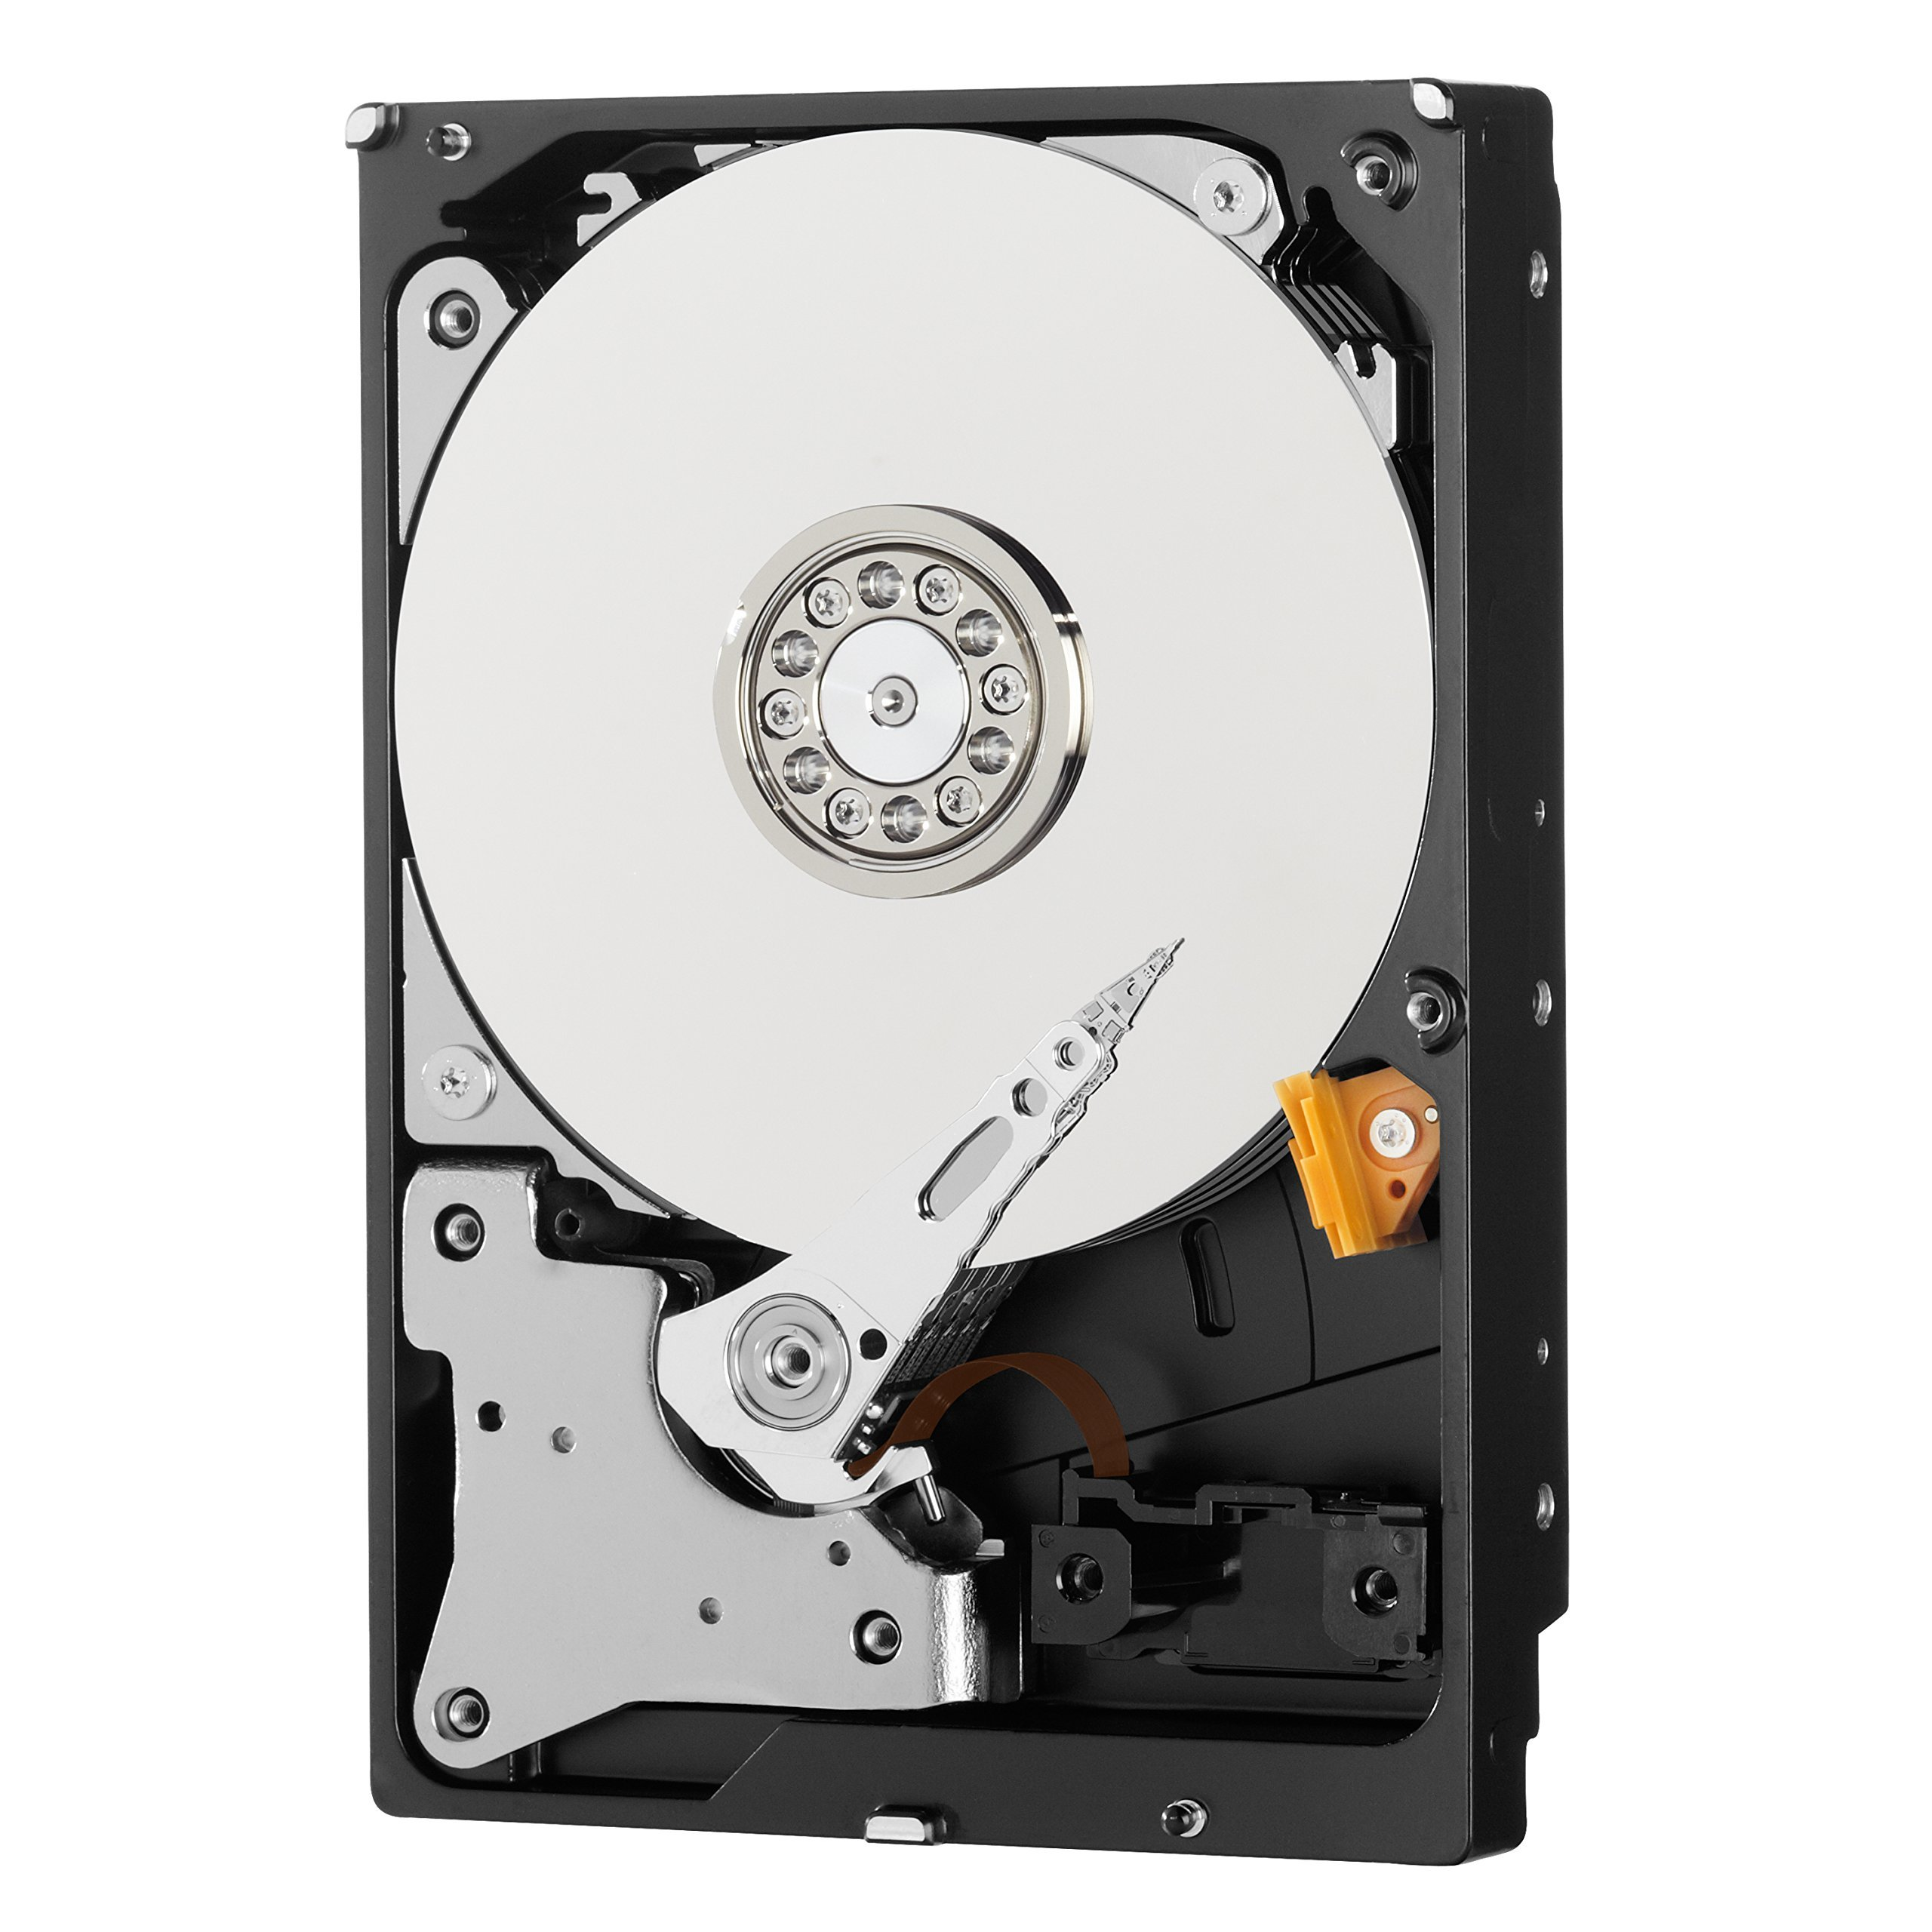 WD Purple 1TB Surveillance Hard Disk Drive - 5400 RPM Class SATA 6 Gb/s 64MB Cache 3.5 Inch - WD10PURX [Old Version] (Certified Refurbished) by Western Digital (Image #9)